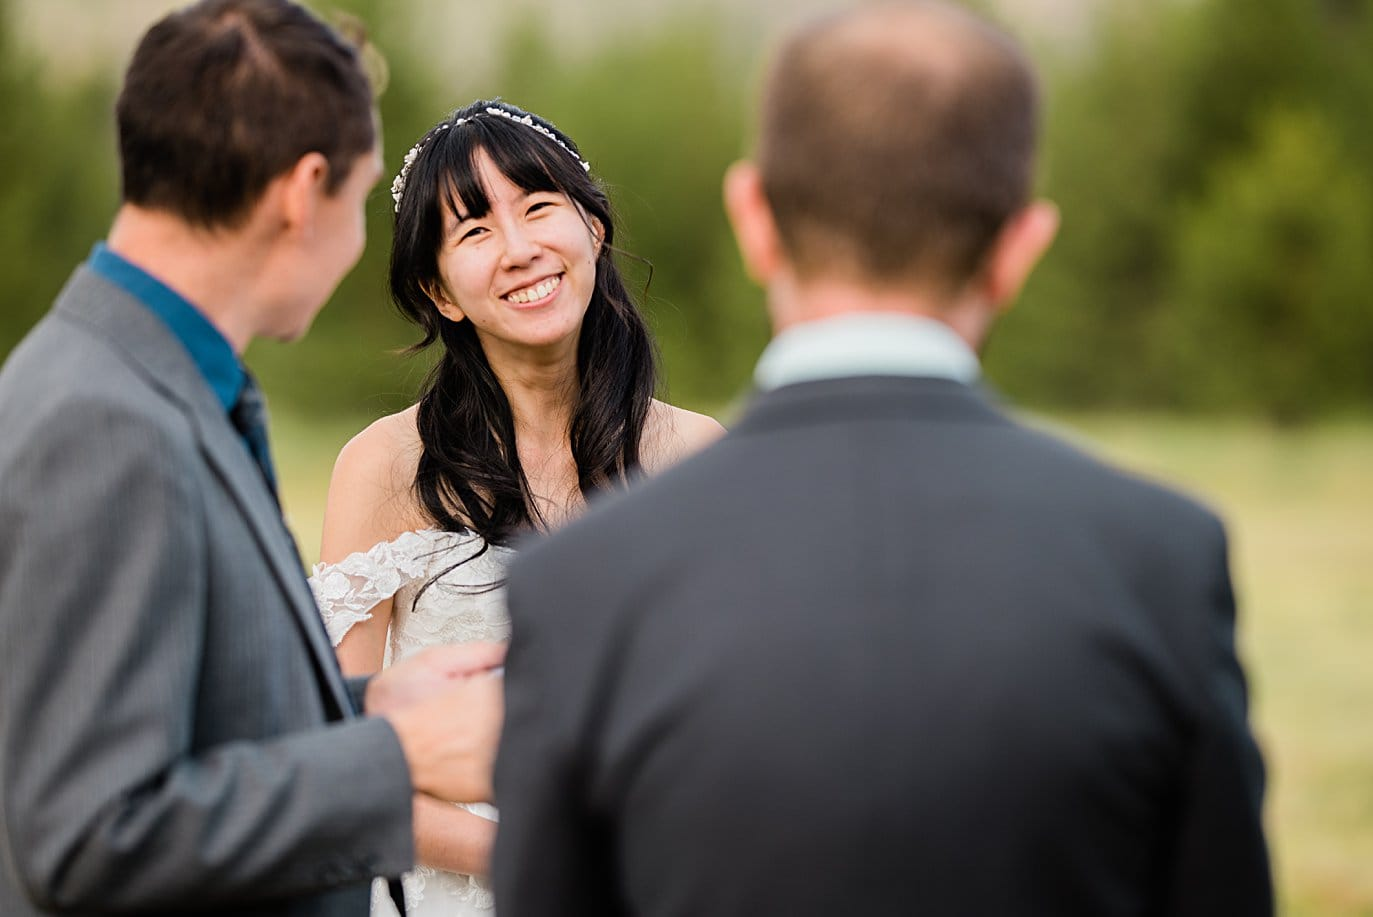 bride looks at groom during ceremony at intimate Grand Lake wedding by Denver wedding photographer Jennie Crate